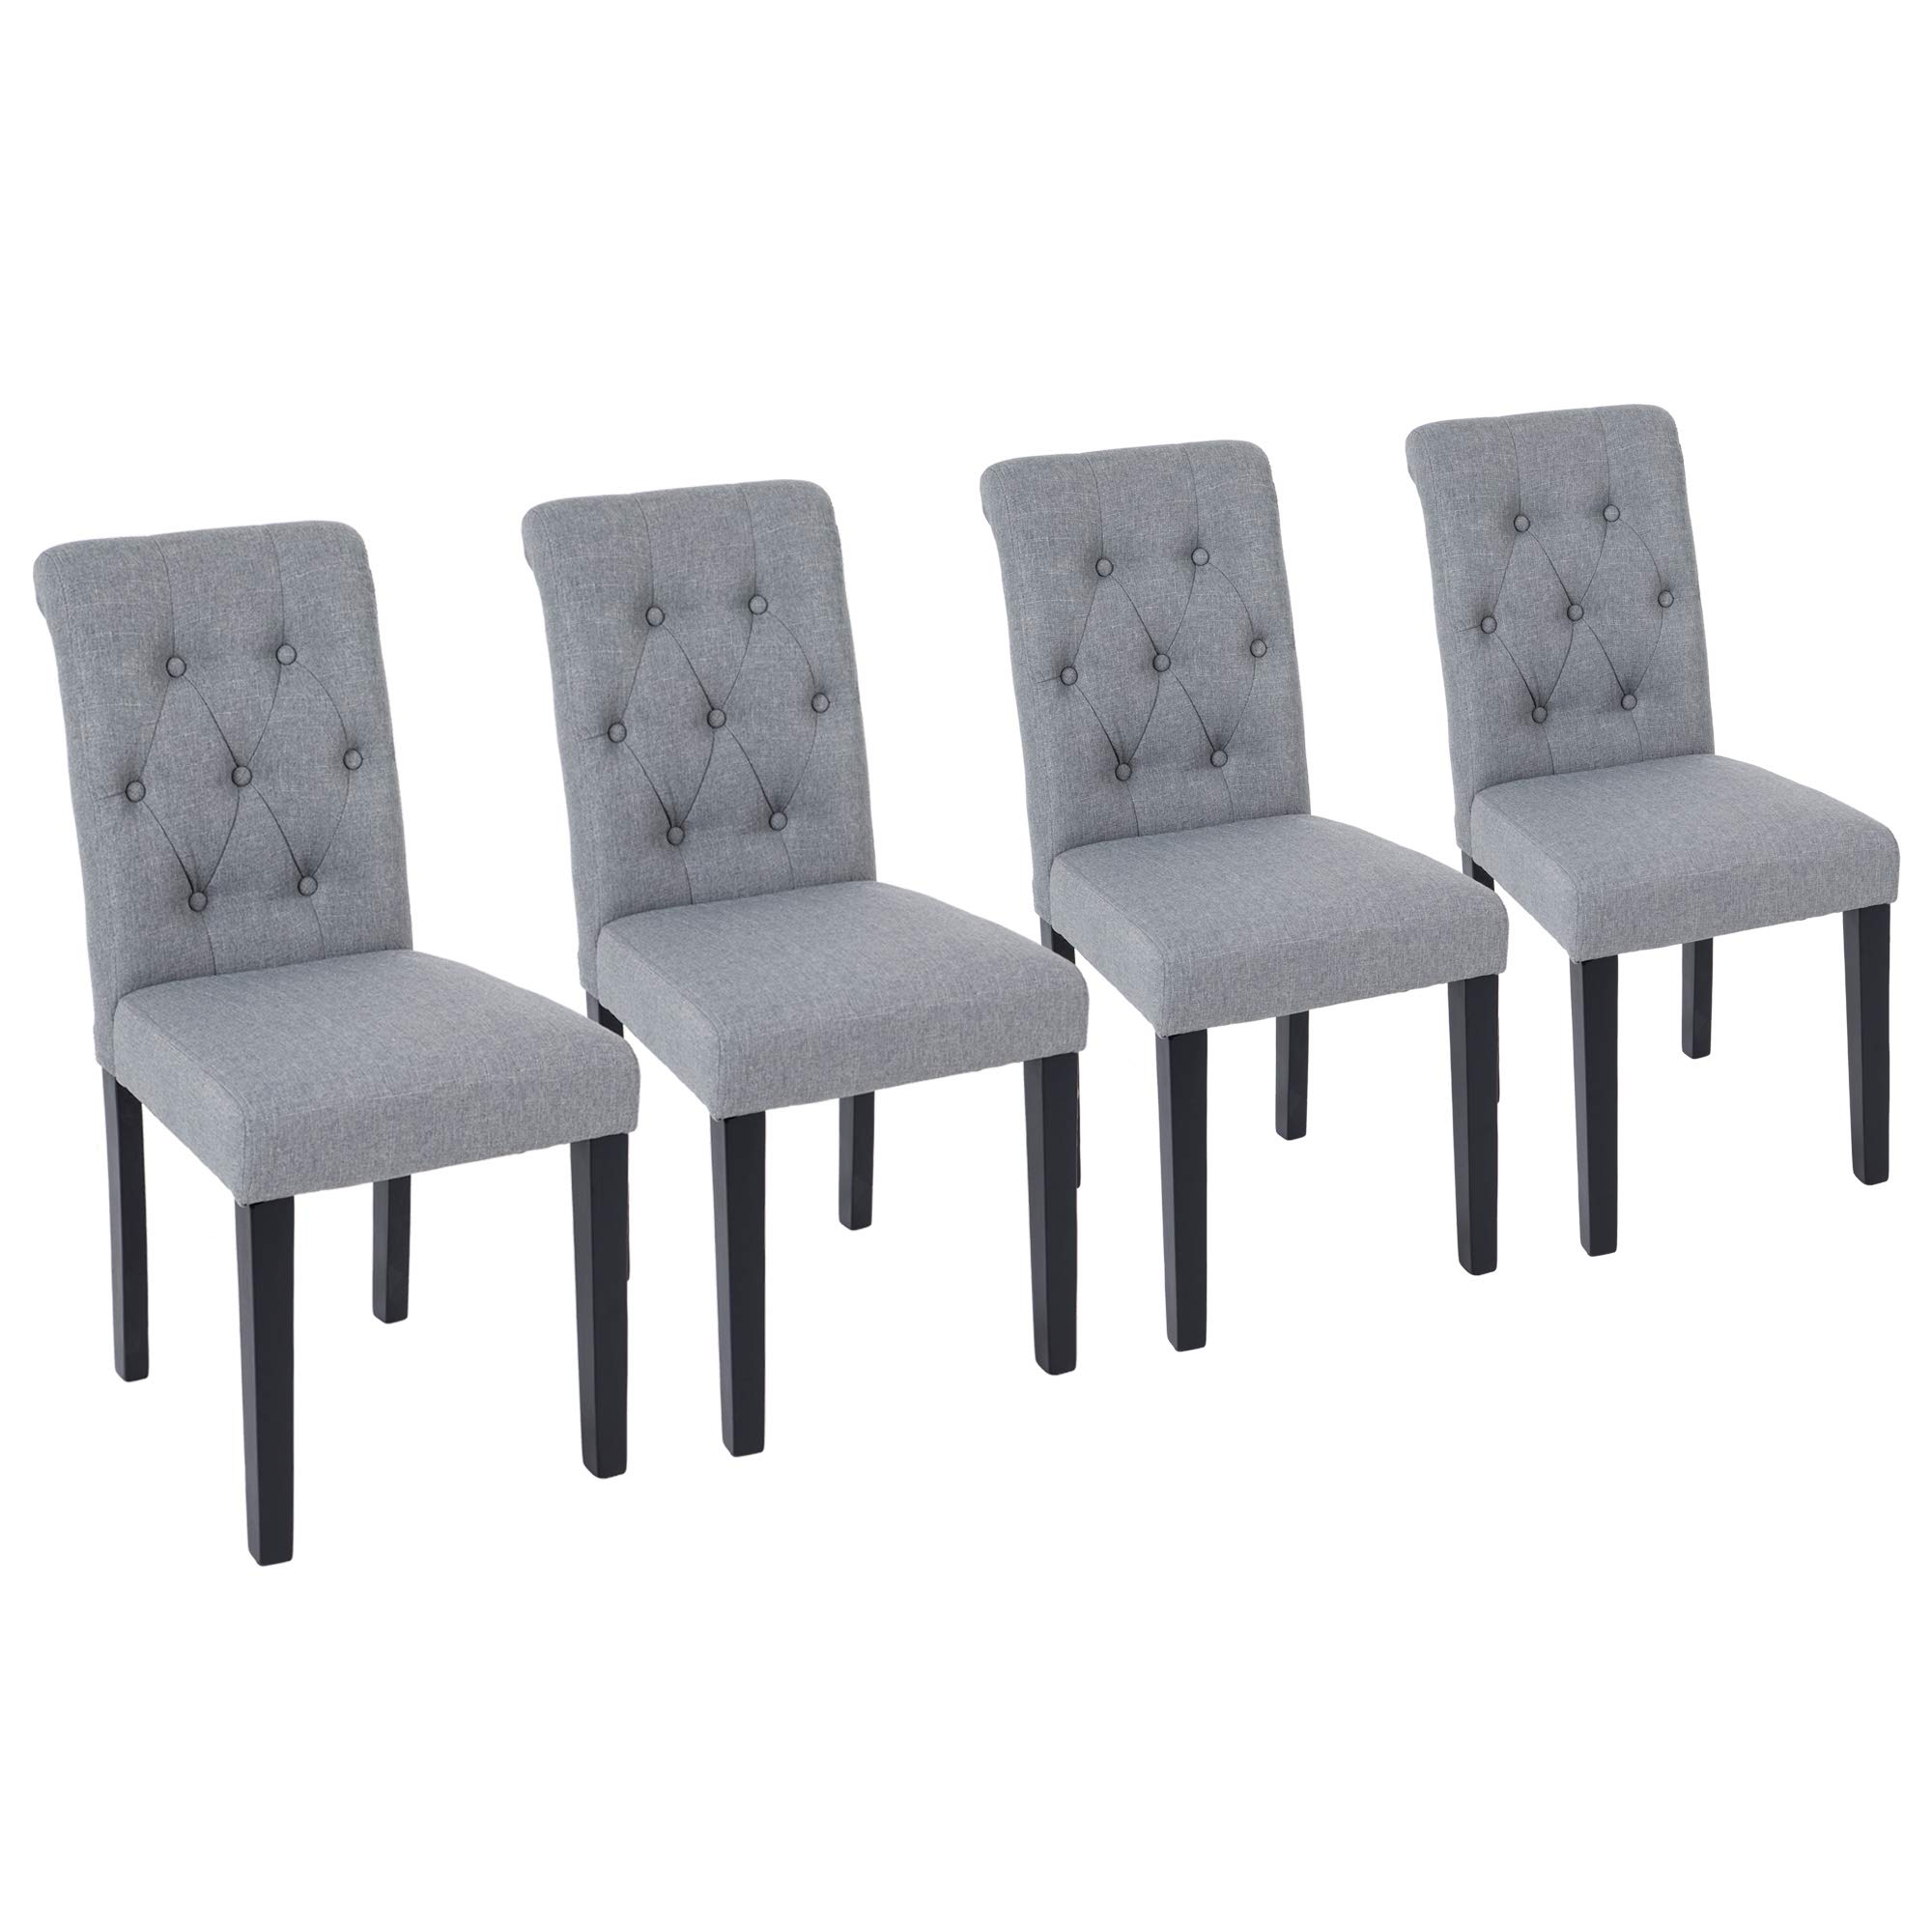 NOBPEINT Fabric Dining Chairs with Solid Wood Legs Set of 4, Gray